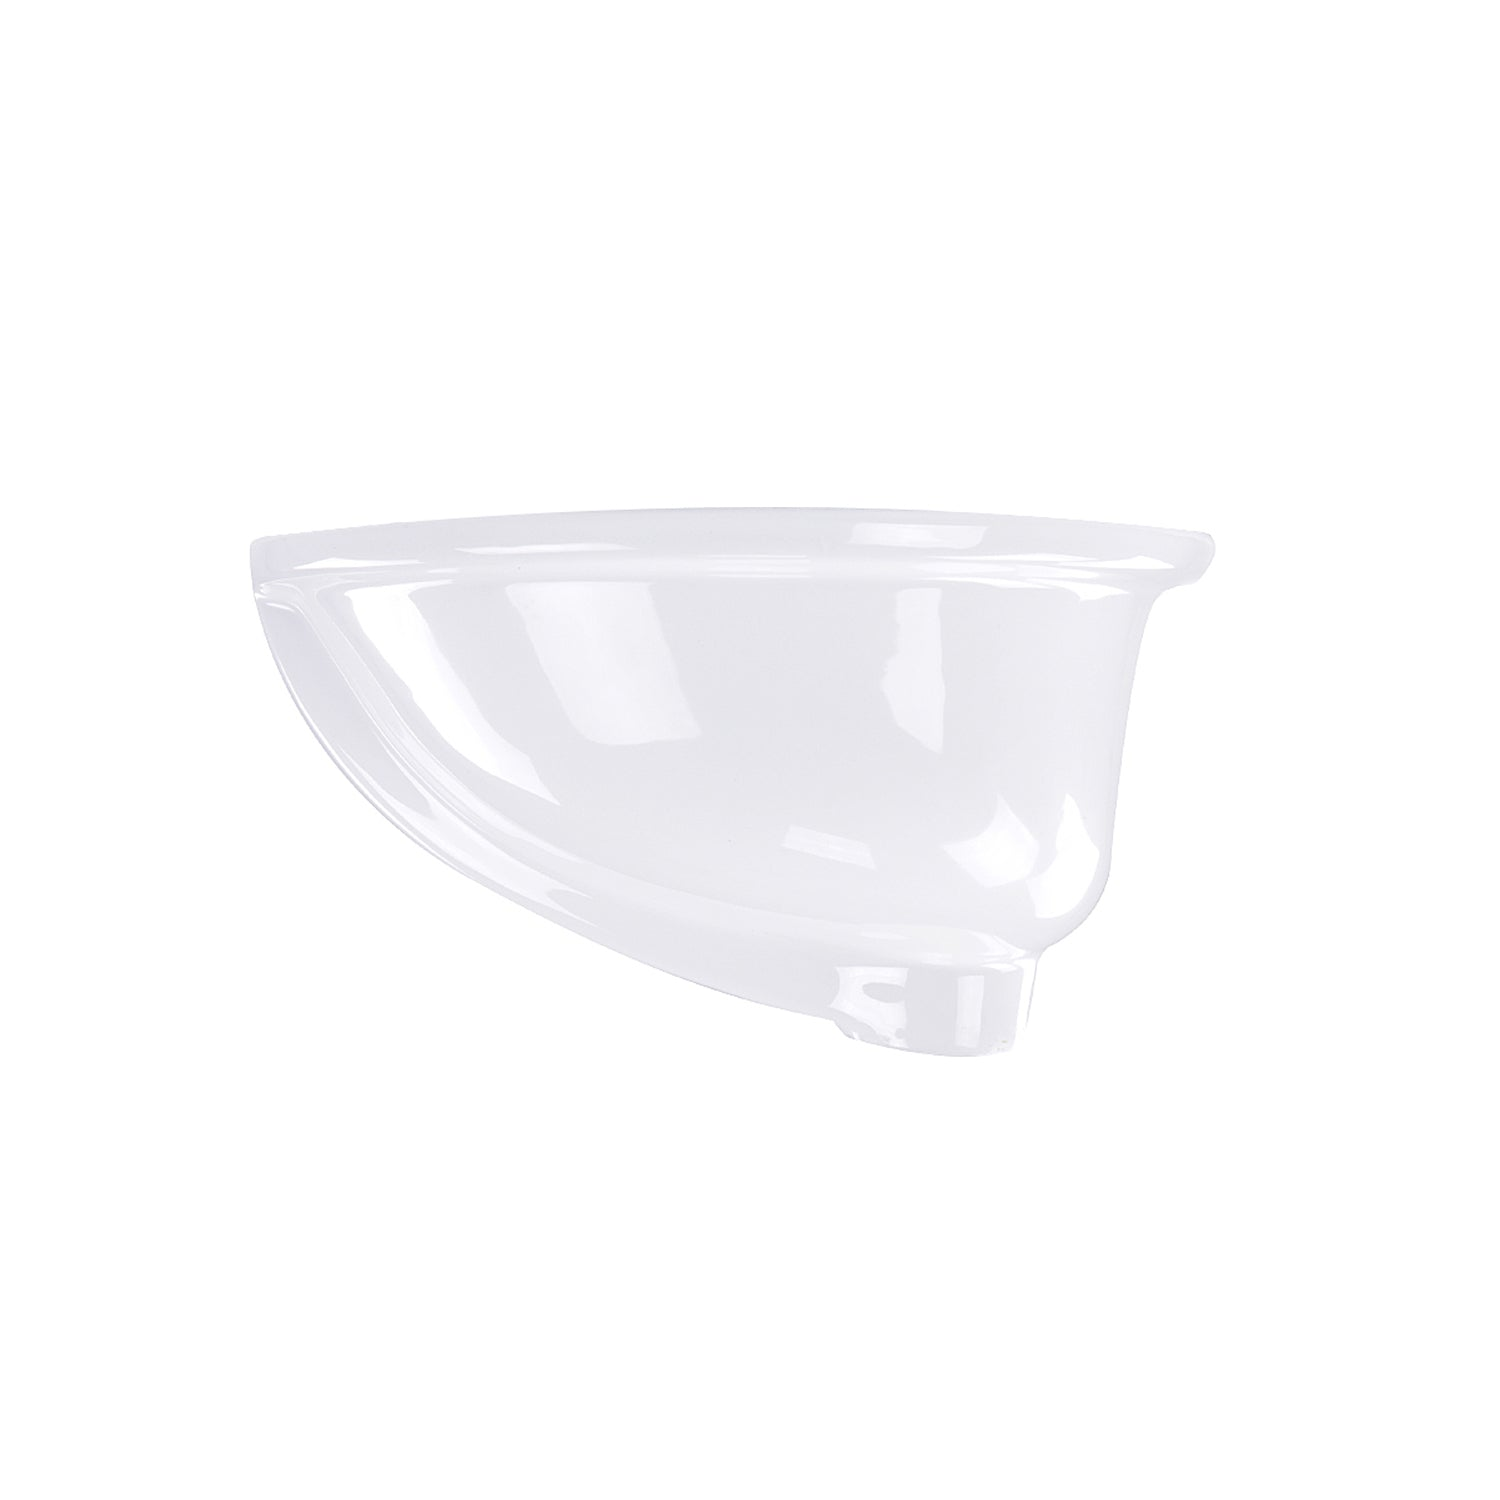 Nantucket Sinks 17 x 14 Glazed Bottom Undermount Oval Ceramic Sink In White